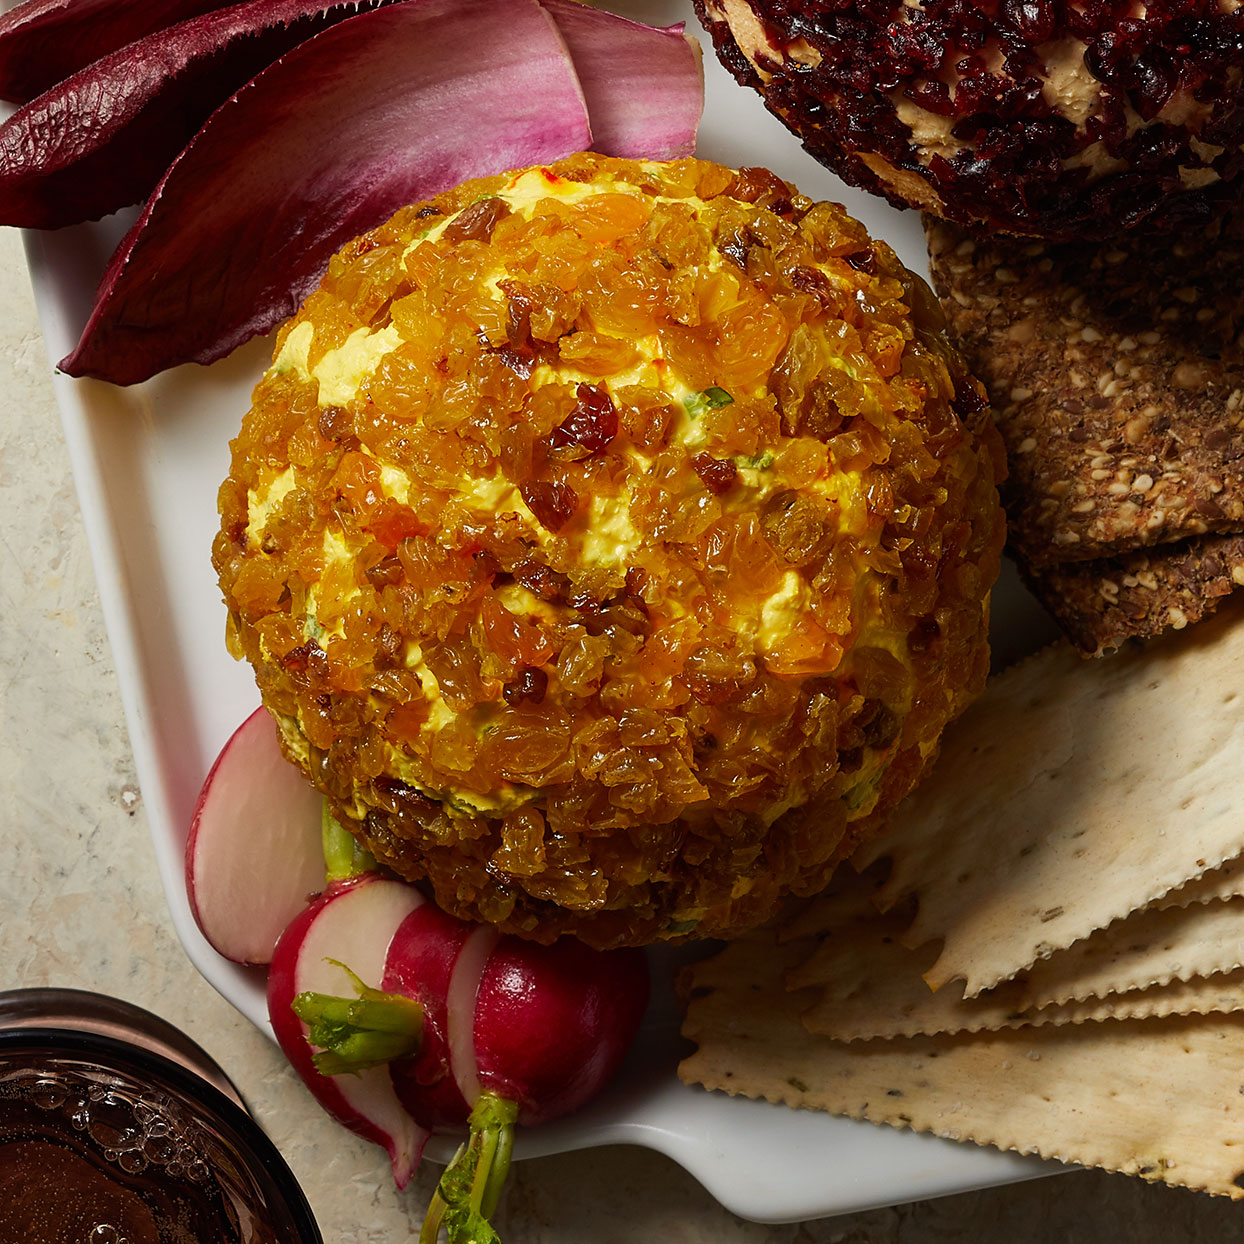 Saffron-Raisin Cheese Ball